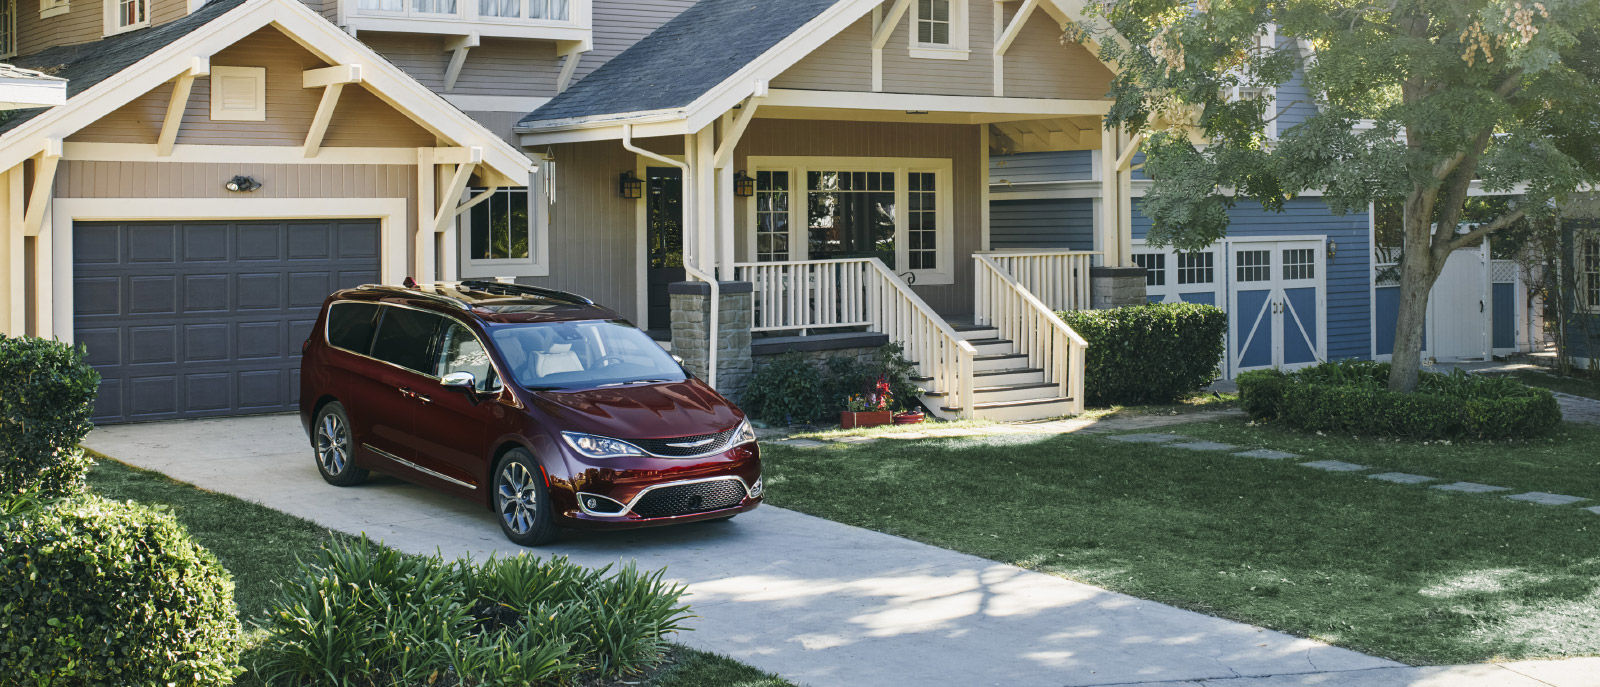 2017 Chrysler Pacifica Exterior Red